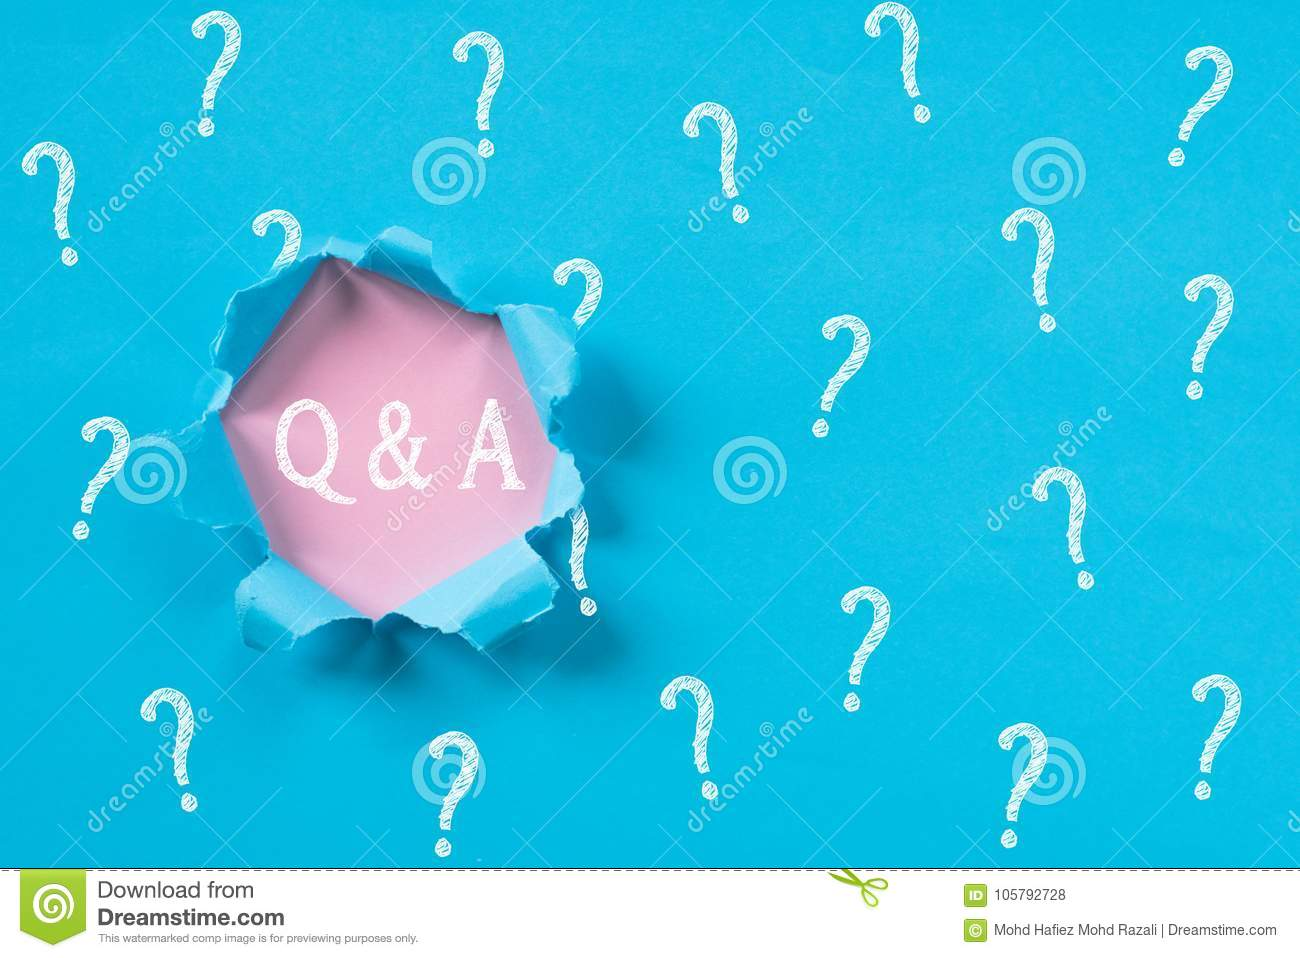 Blue torn paper with question mark revealing Q&A word